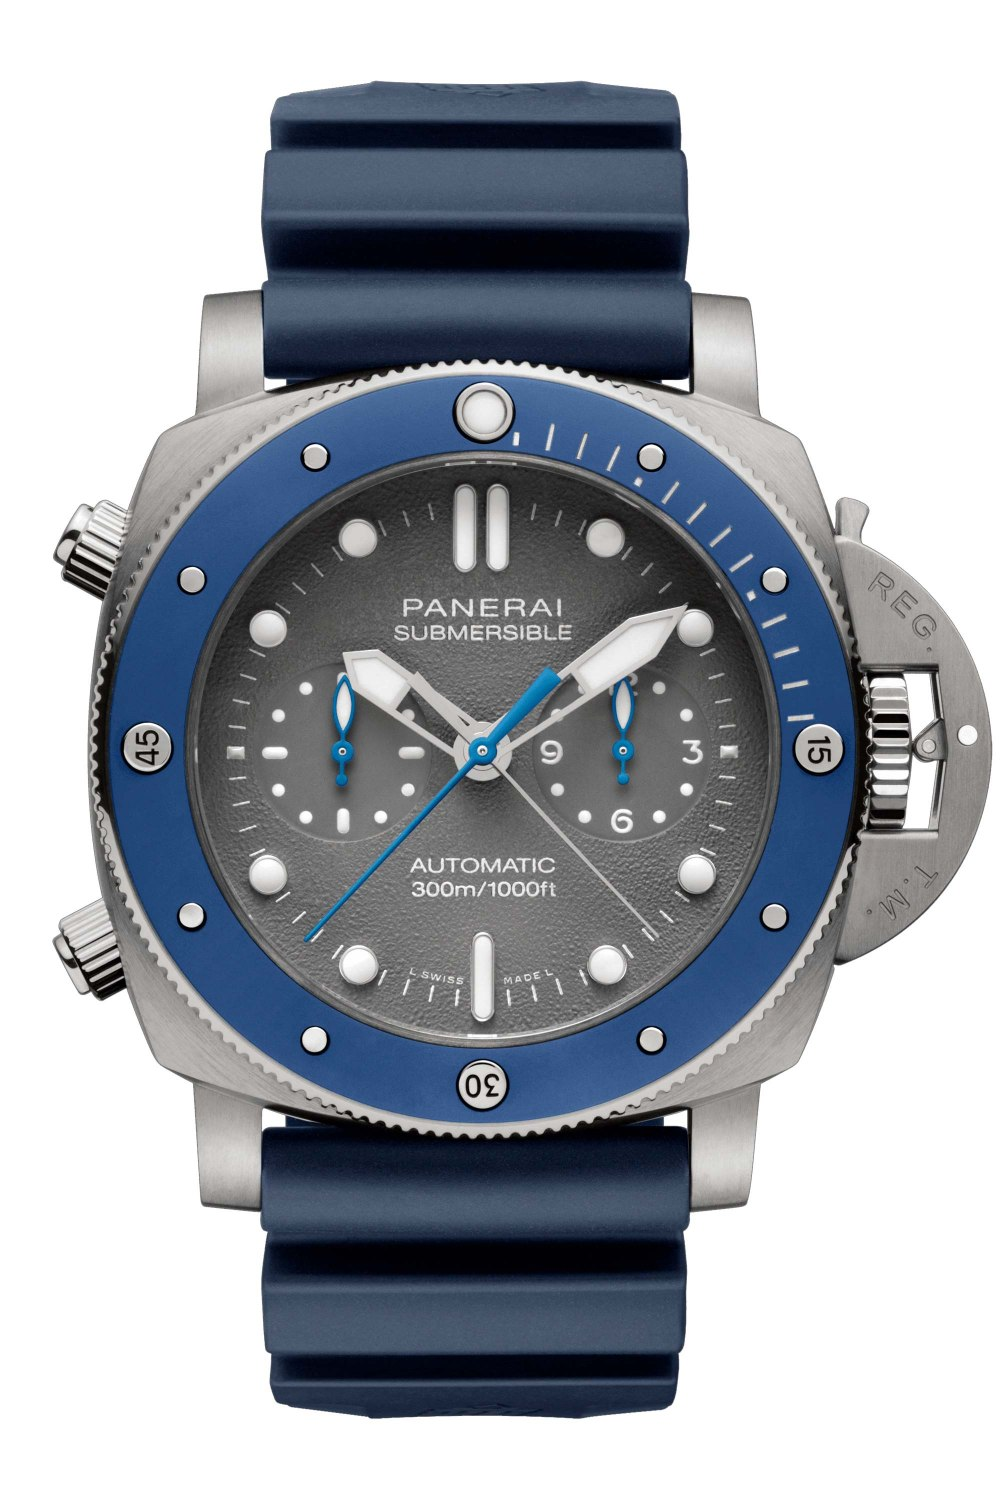 PANERAI Submersible Chrono Guillaume Nery Edition - 47MM PAM00982